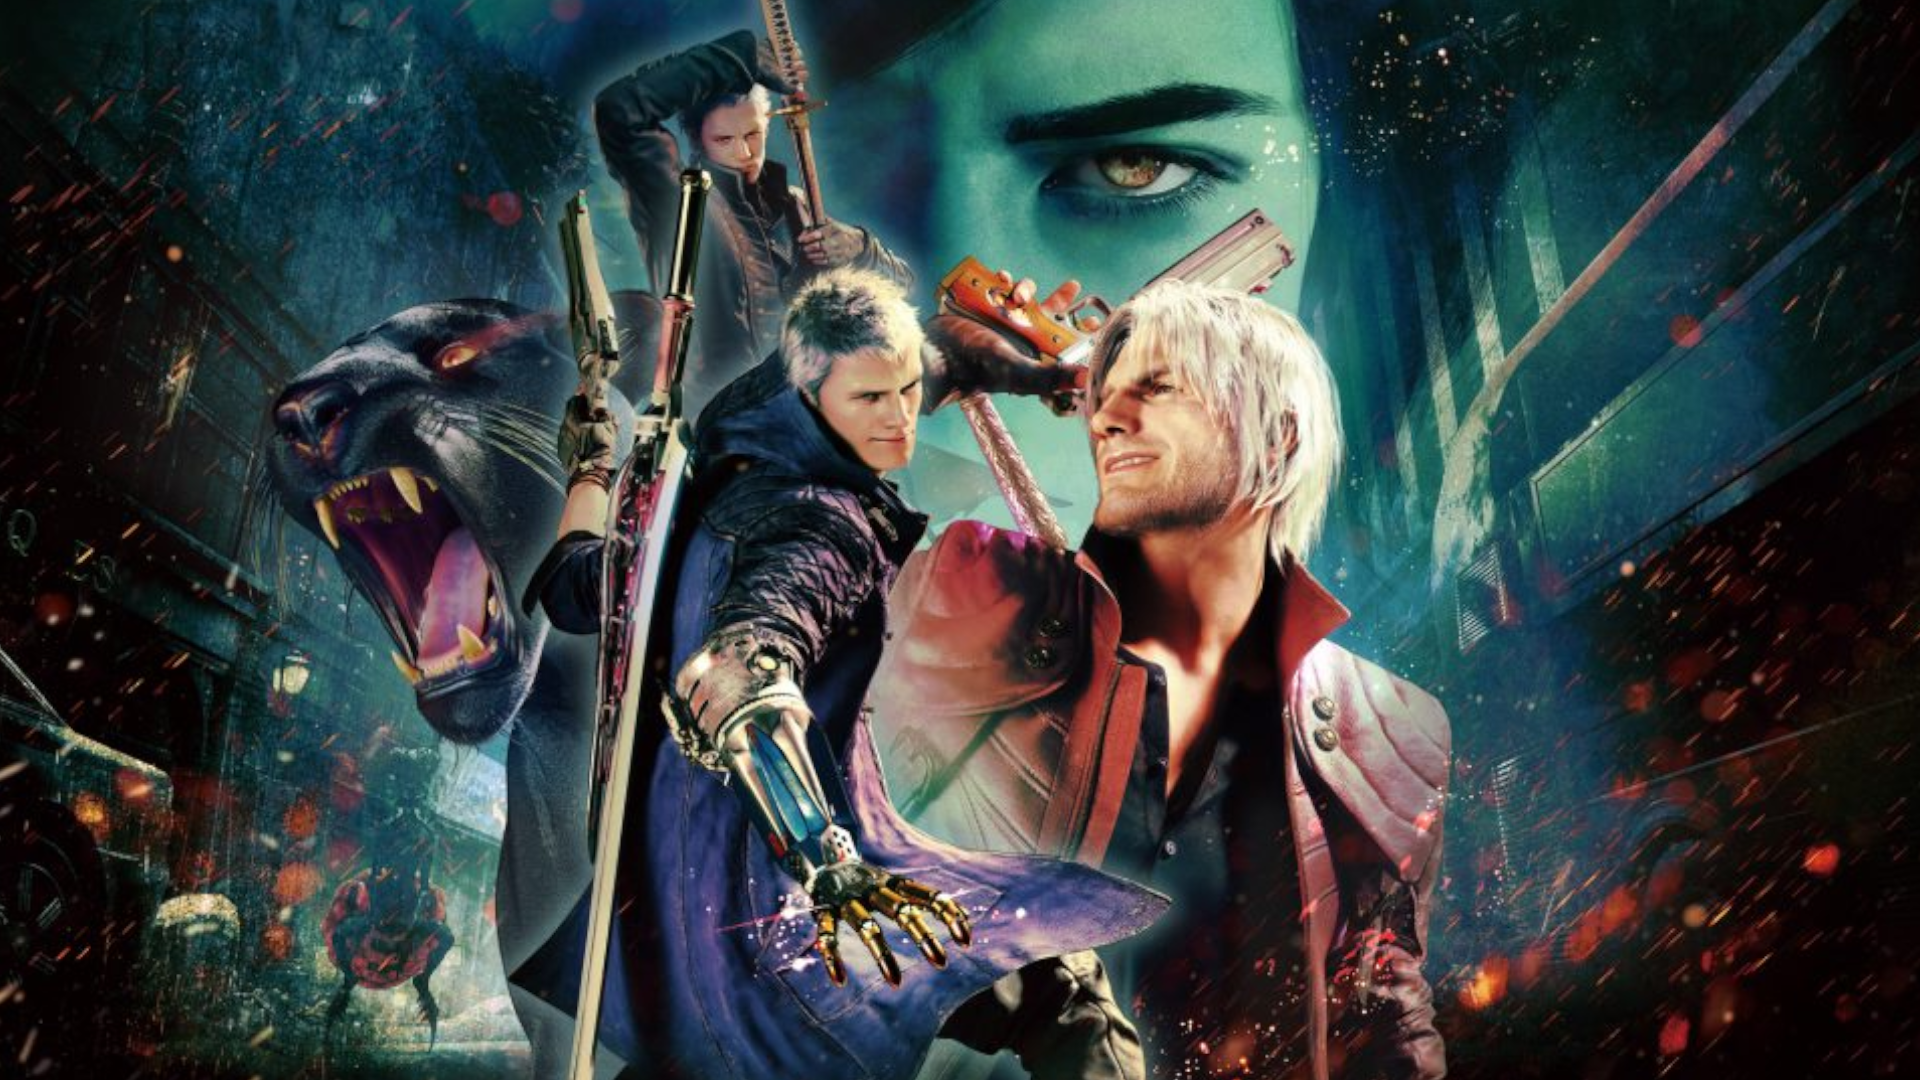 Devil May Cry 5: Special Edition - PS5 - Wallpapers